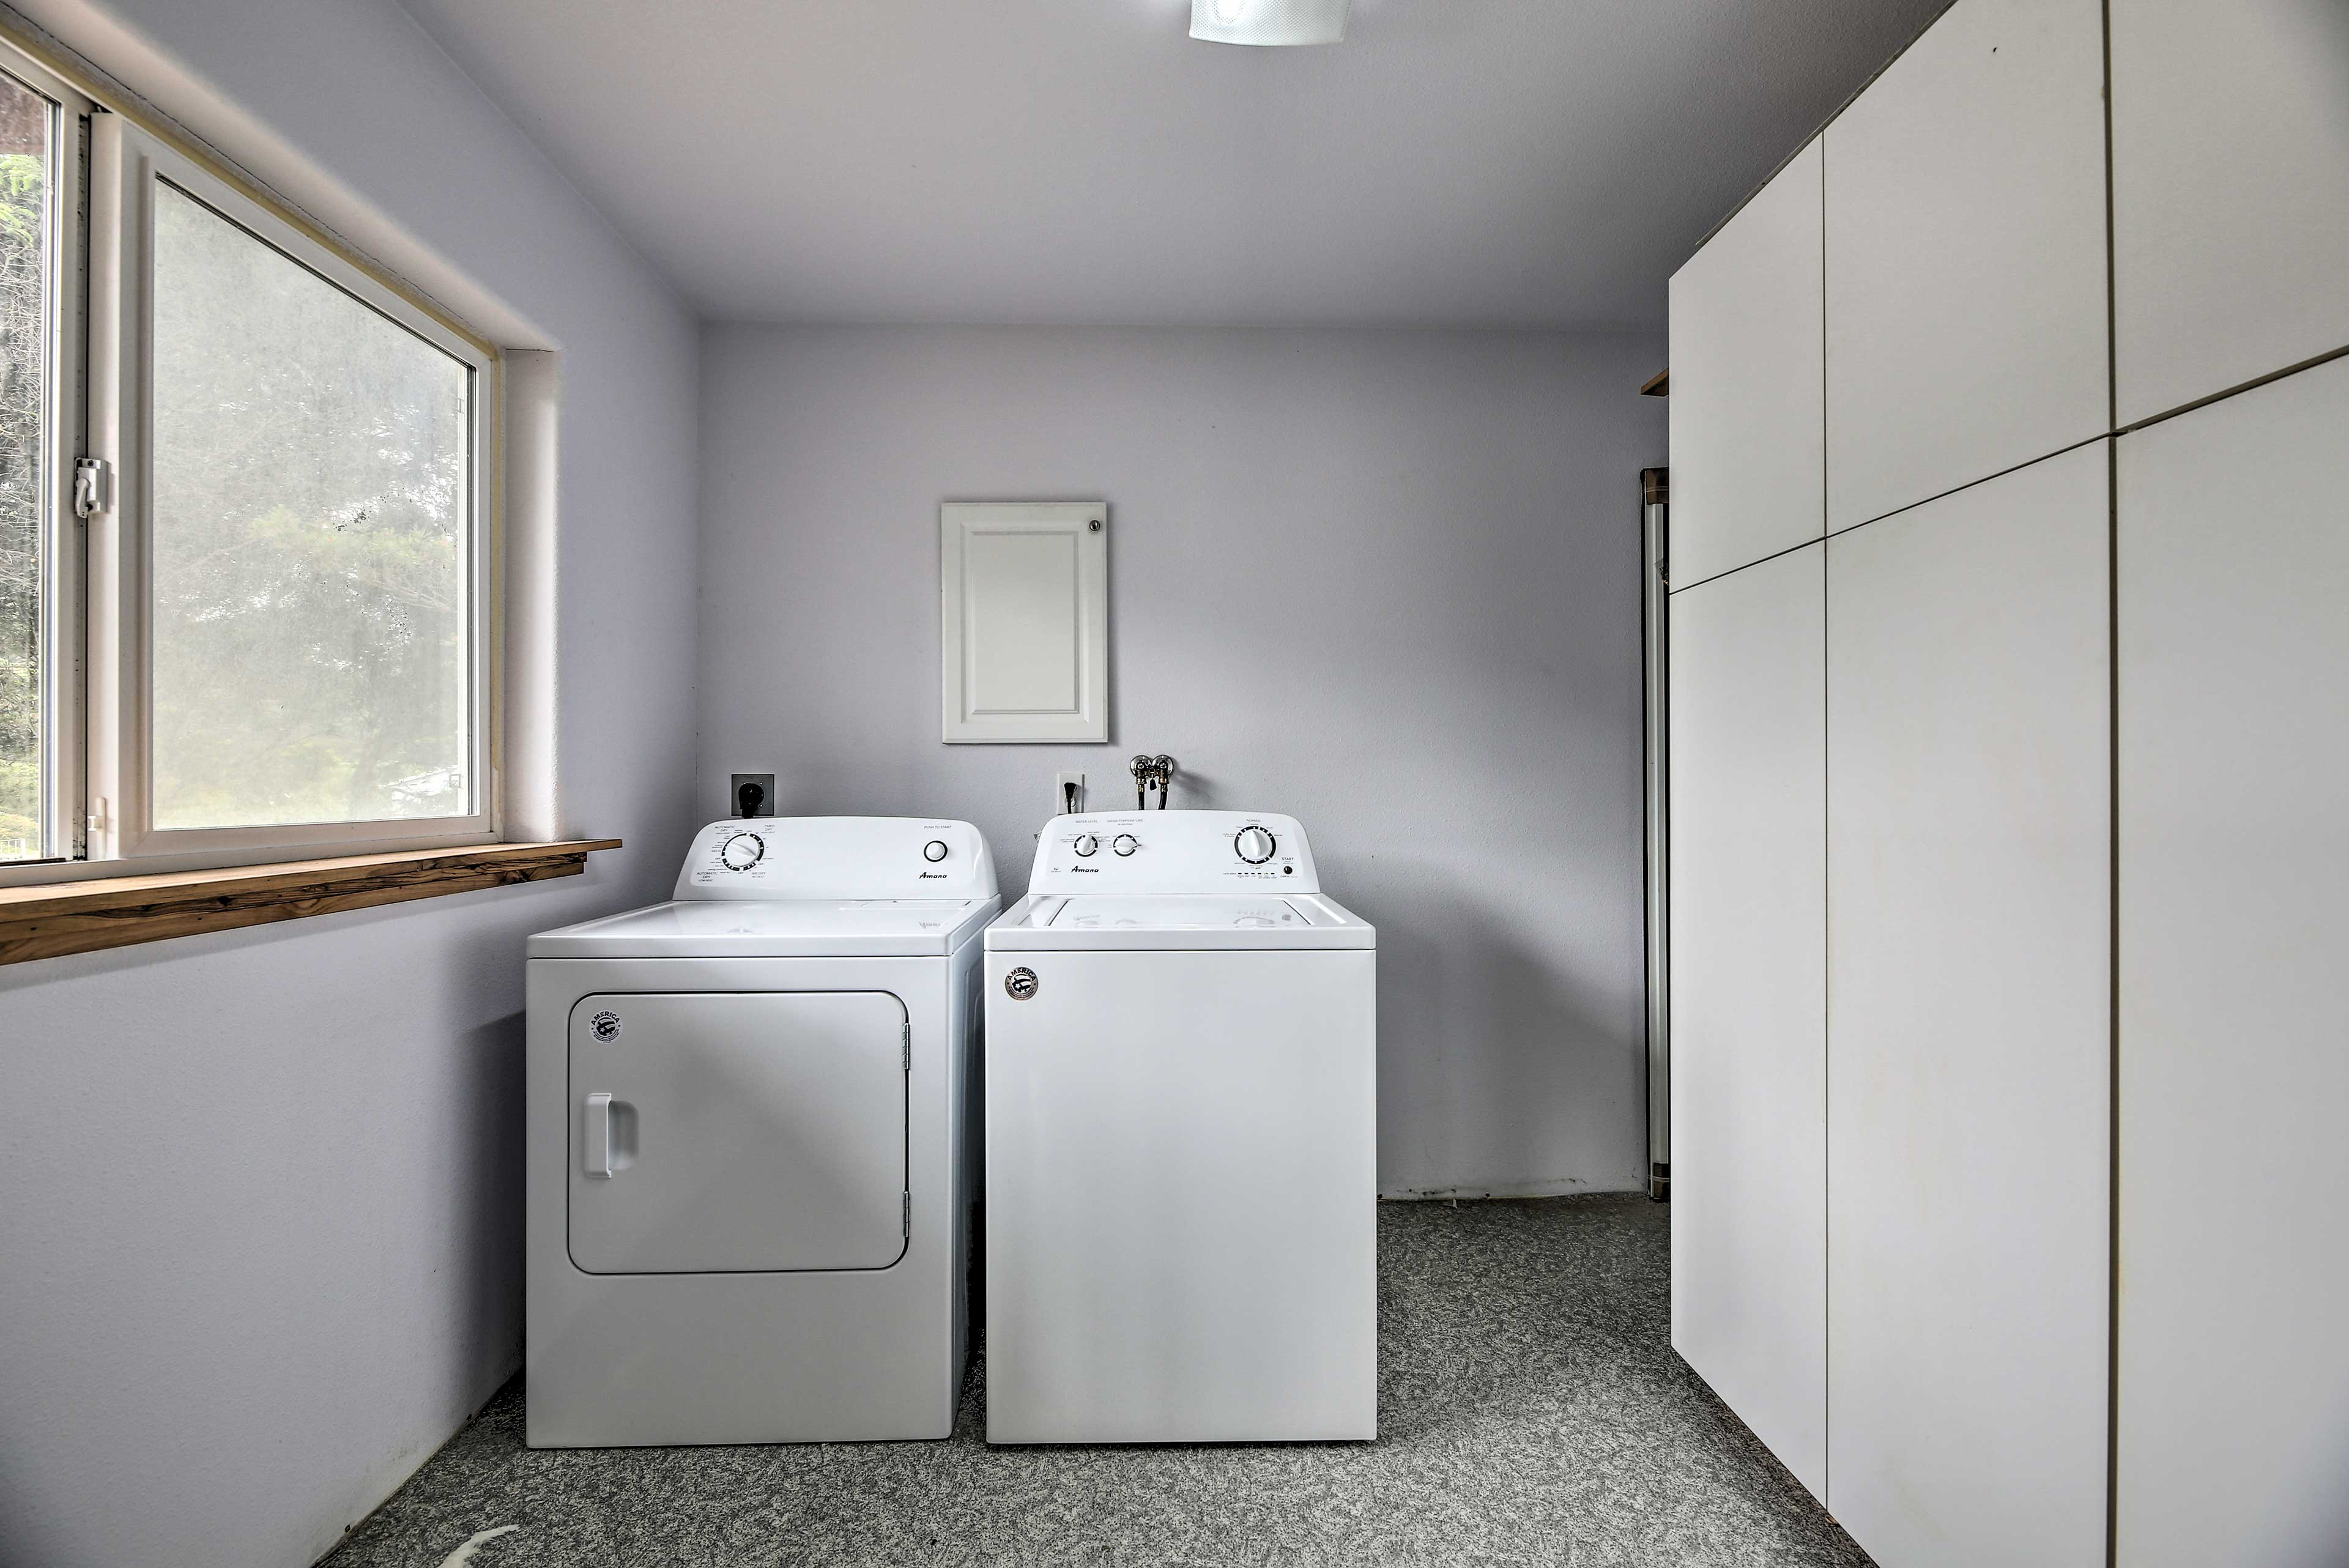 Refrain from over packing when you have a washer and dryer at your disposal.